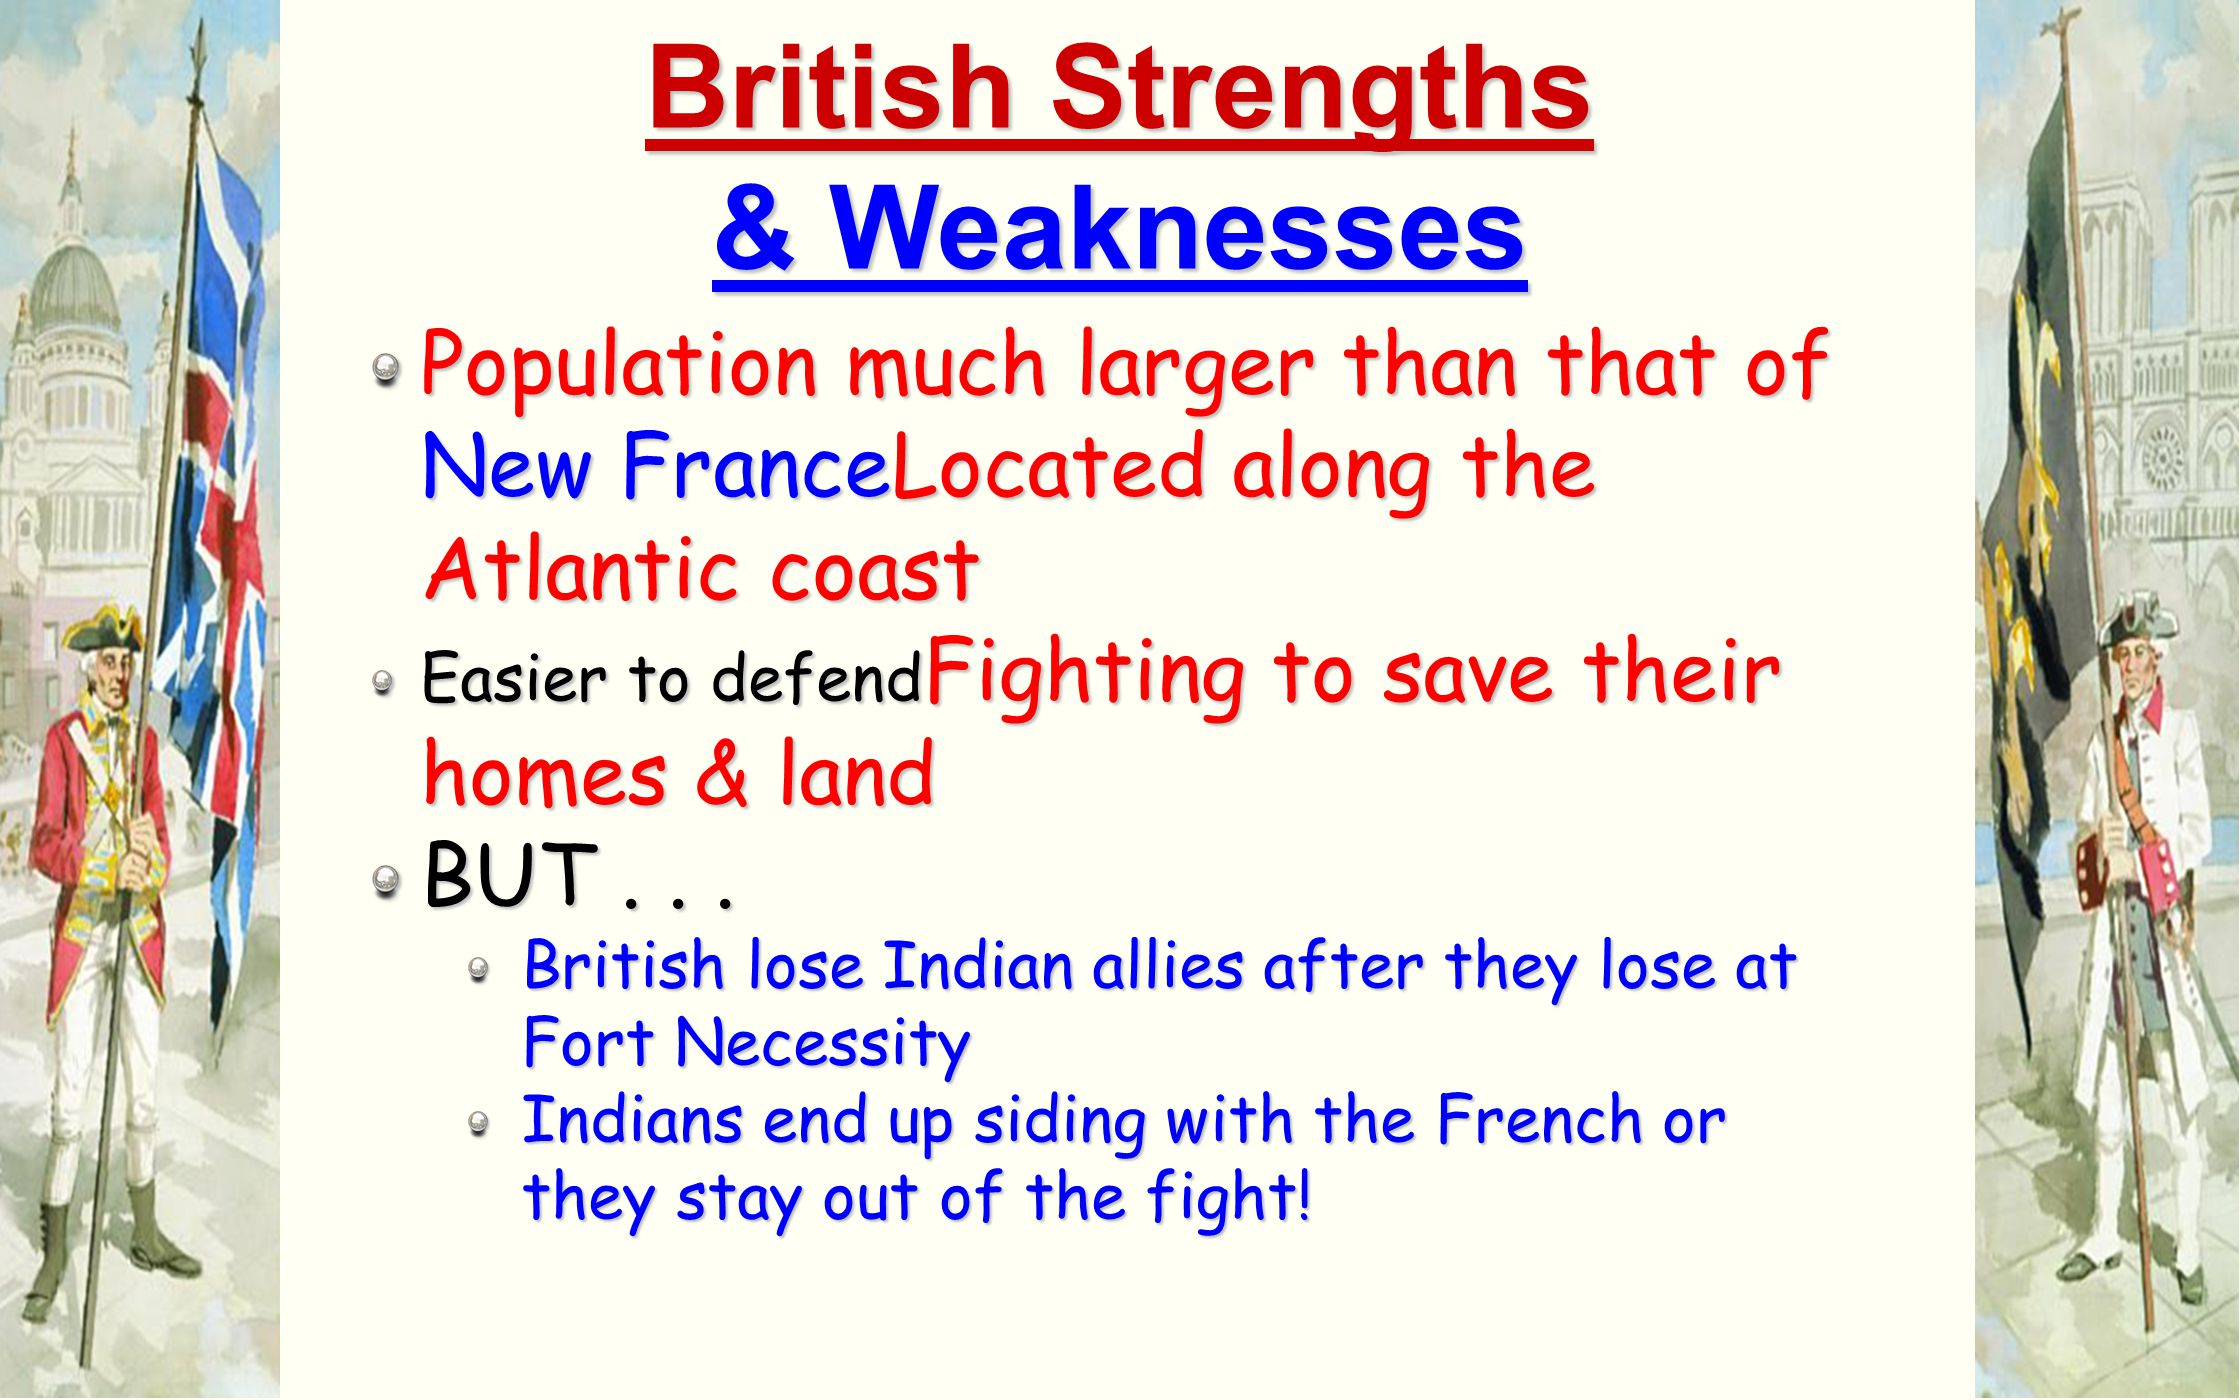 British Strengths & Weaknesses